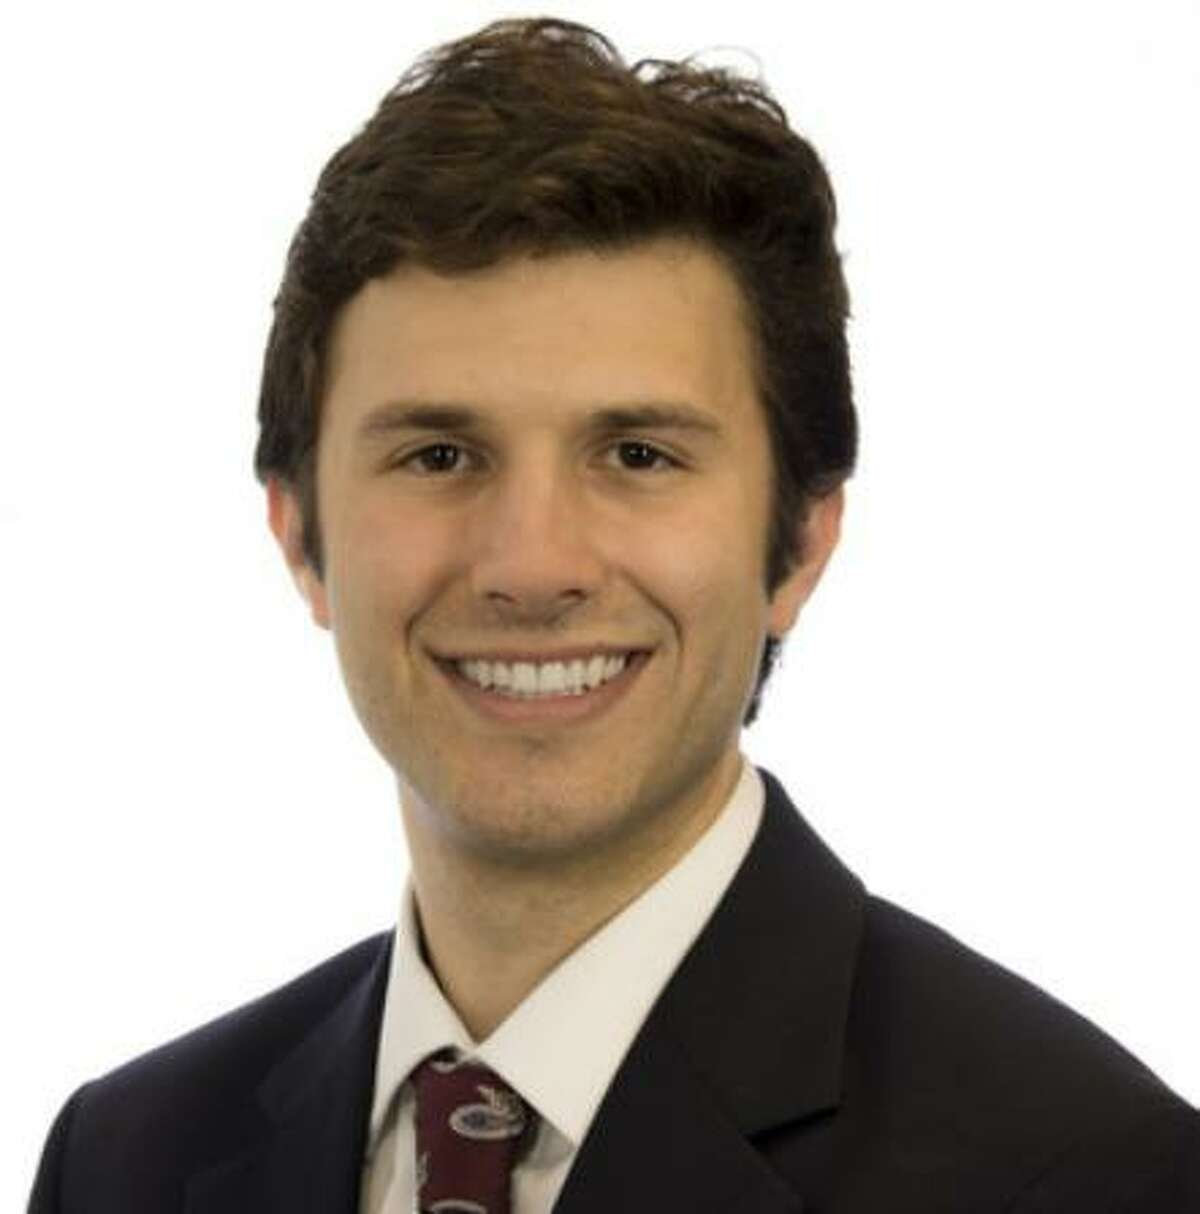 Joseph Lehocky of Shelton was recently selected as the recipient of the Andy Thiede HR Certification Scholarship.